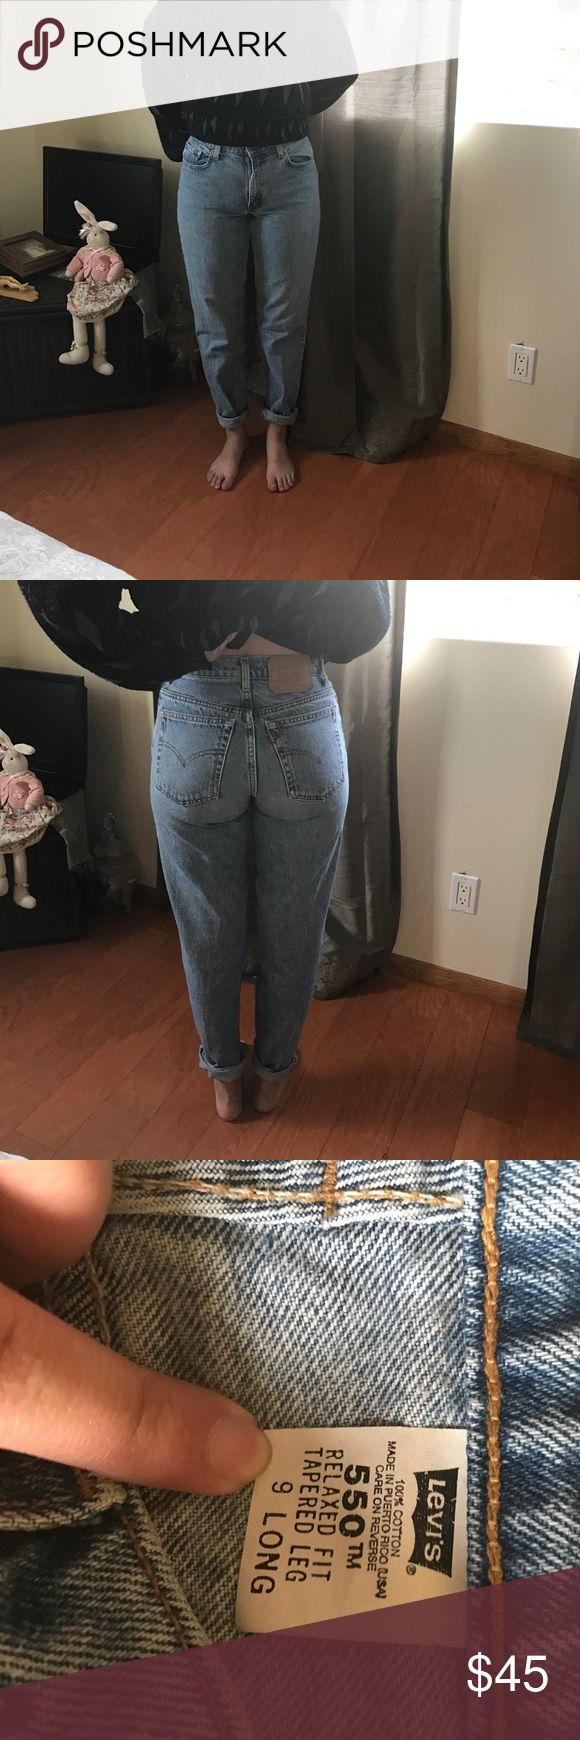 LEVI 550 HIGH WAISTED JEANS/MOM JEANS LEVIS 550 HIGH WAISTED JEANS. LIGHT-MEDIUM WASH. SUPER CUTE! *** REAL PICTURE OF THE JEANS. Levi's Jeans